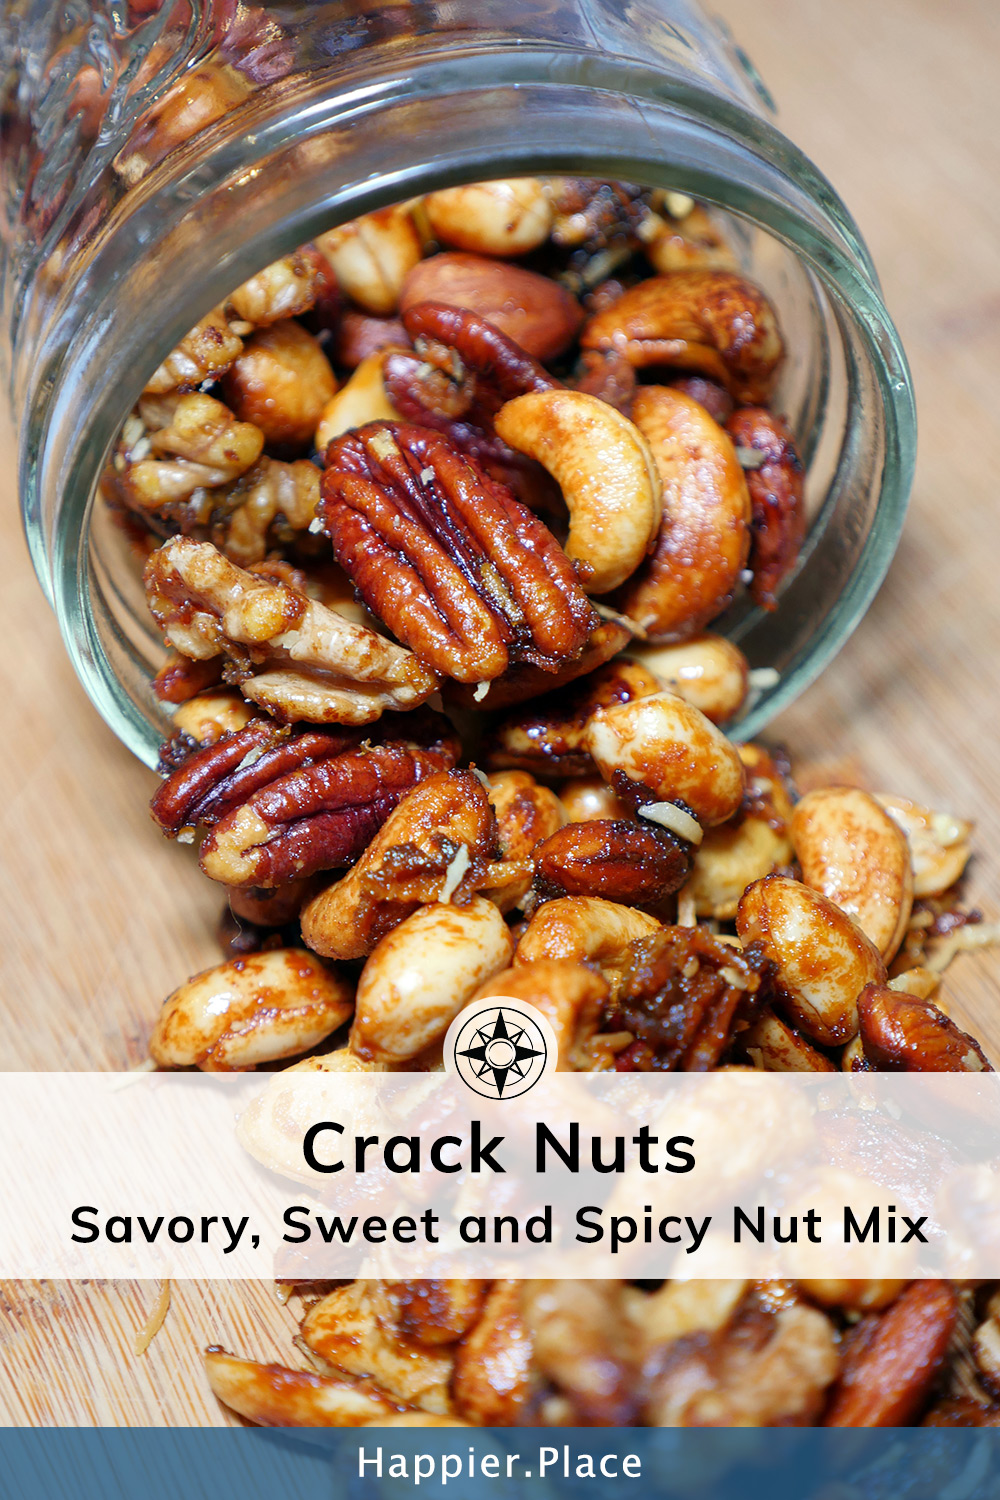 Crack Nuts: Savory, Sweet and Spicy Nut Mix